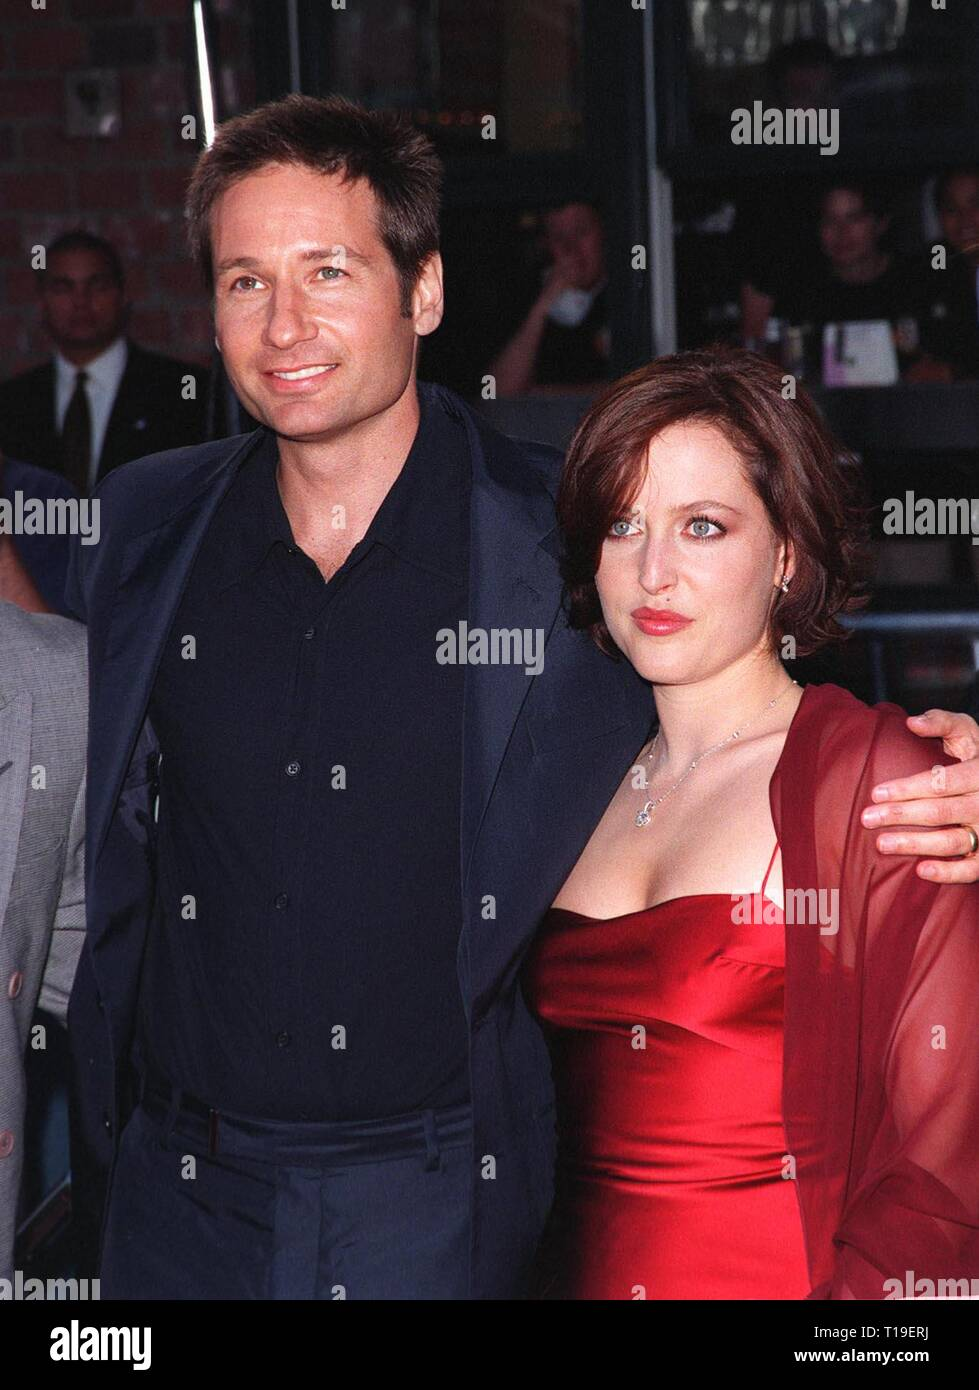 """LOS ANGELES, CA - September 8, 2011:  Actor DAVID DUCHOVNY & actress GILLIAN ANDERSON at the world premiere, in Los Angeles, of their movie """"The X-Files."""" Stock Photo"""